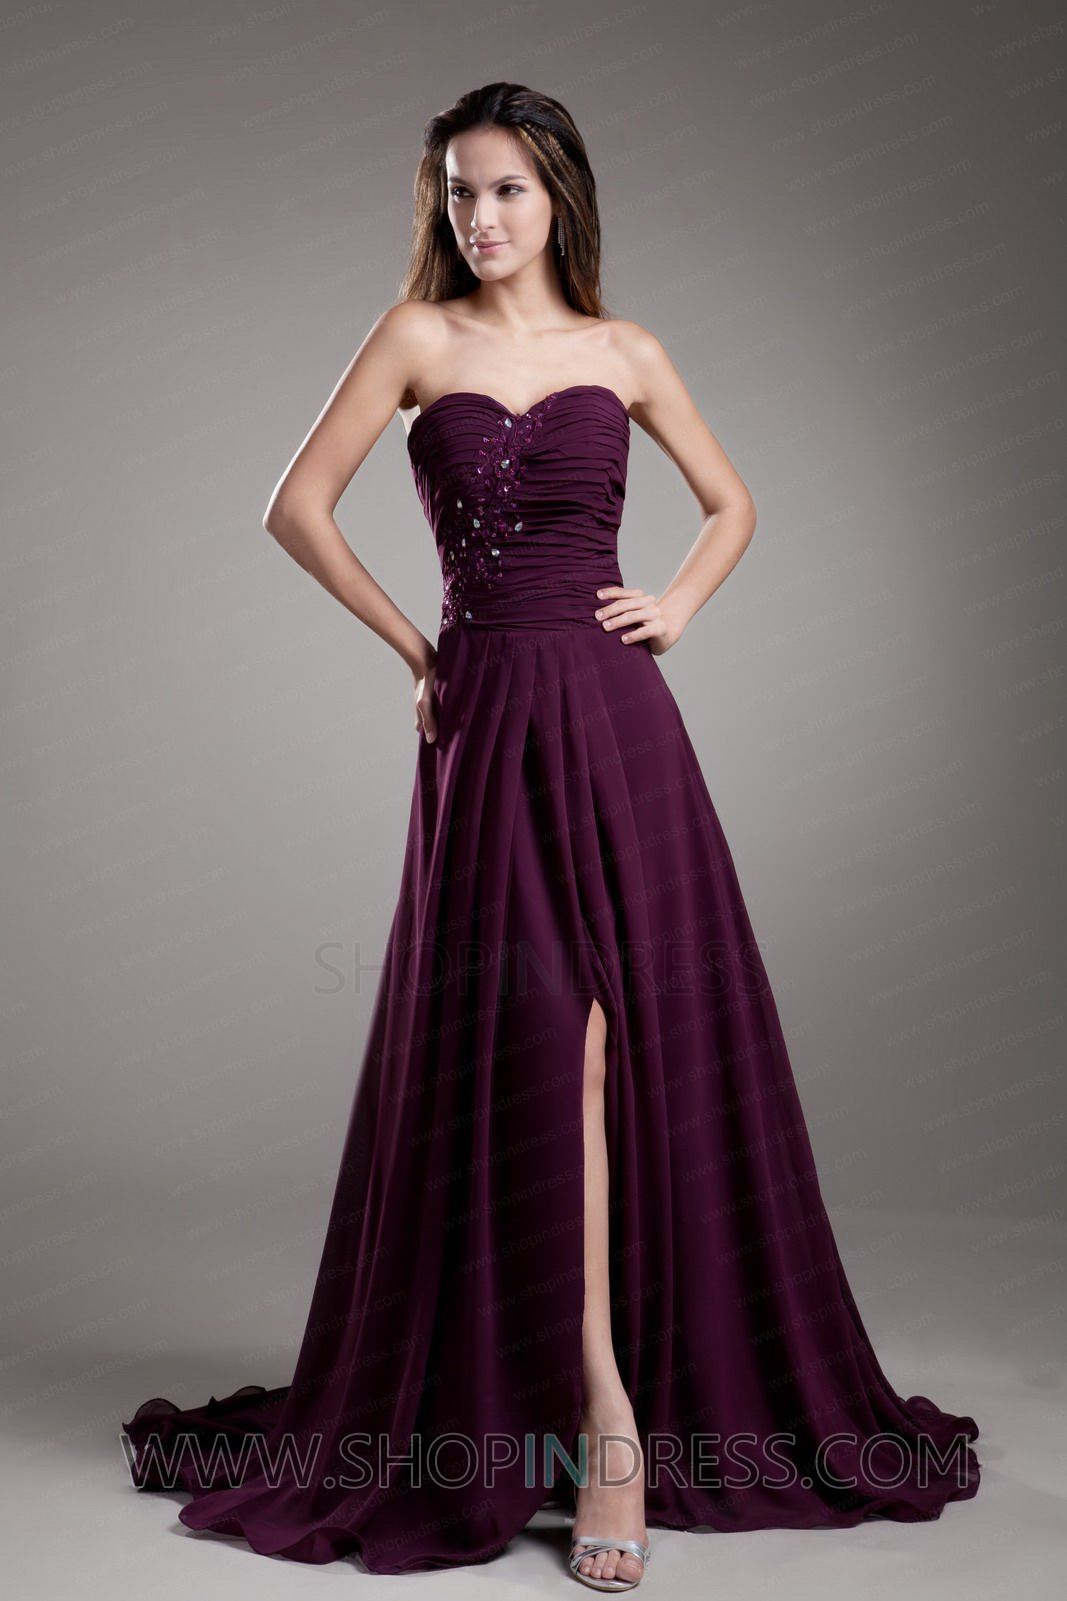 plum bridesmaid dresses - Google Search | Style: inventing my ...